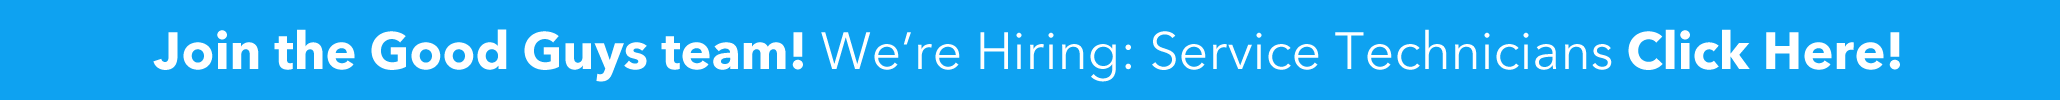 We're looking to grow our service department. Now hiring Technicians, click here for more.